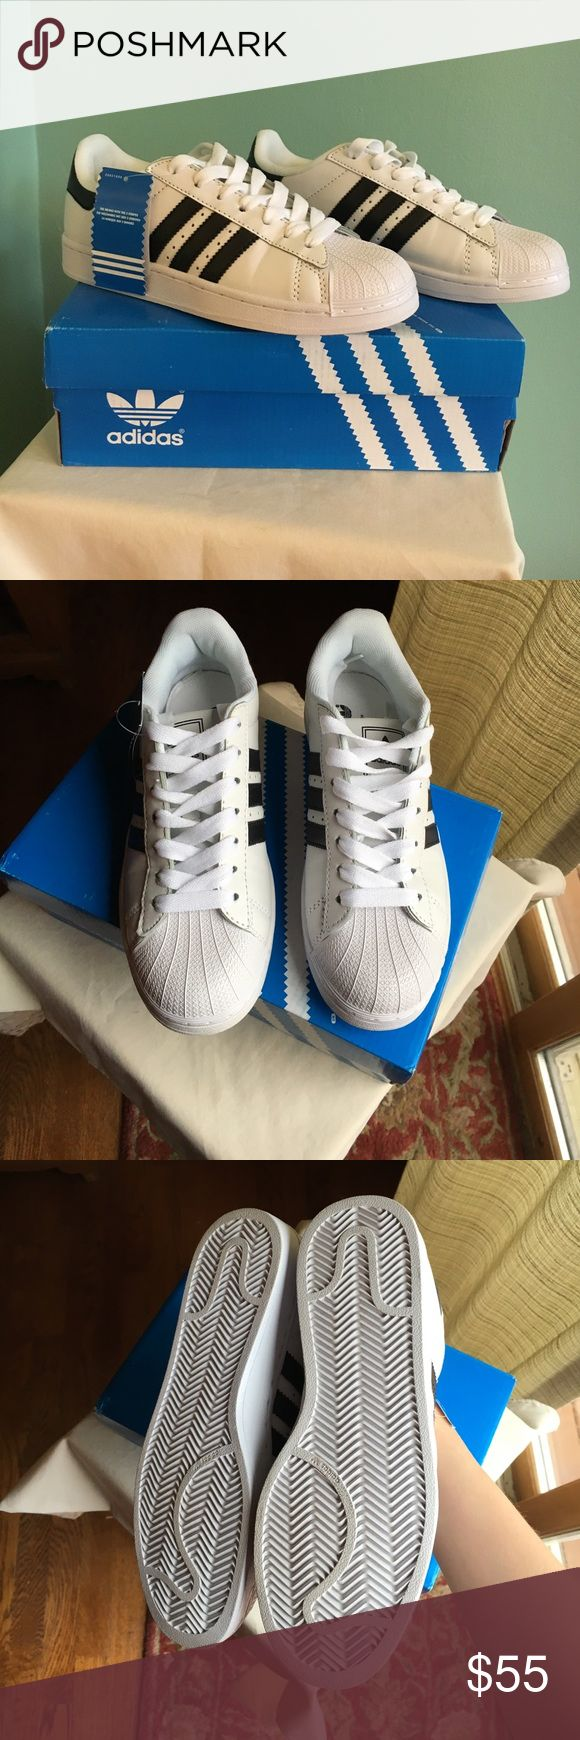 Adidas, Superstar shoes! Very good condition, never worn, still has tags and is still in the box! 6 1/2 in a woman's shoes and 5 in men's. Adidas Shoes Sneakers